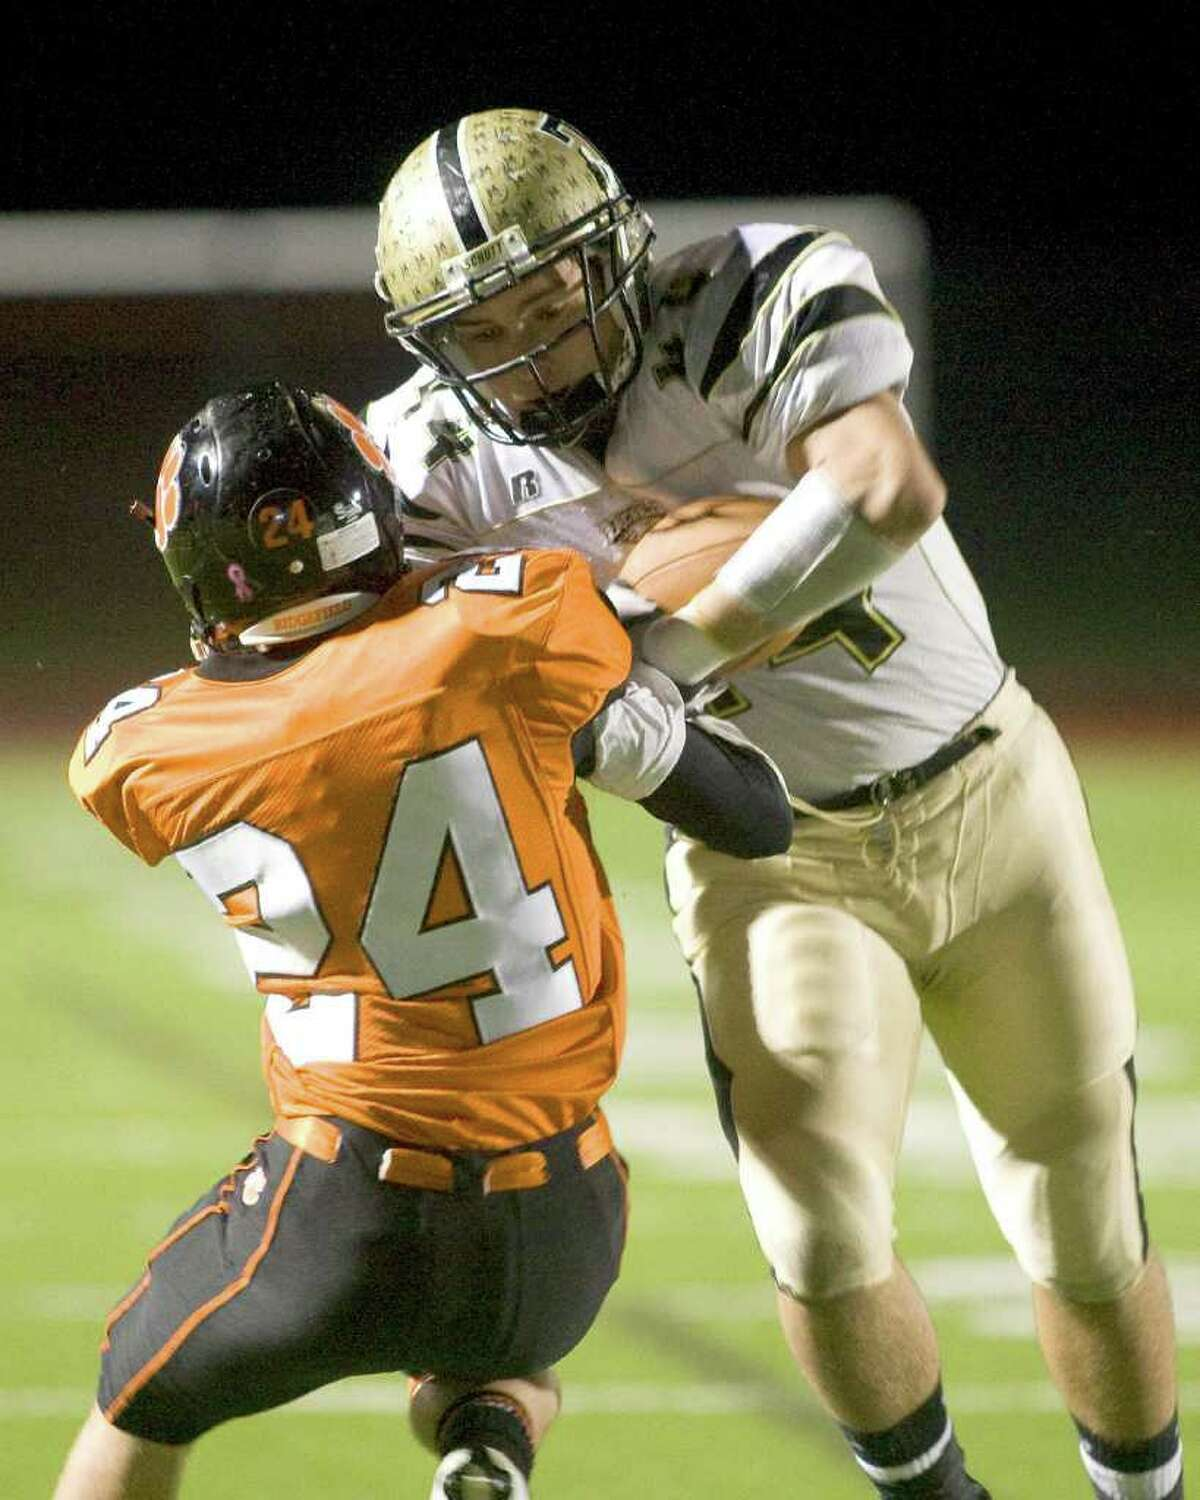 Trumbull's Don Cherry runs over Ridgefield's Stephen Gherardi (24) en route to a touchdown during their FCIAC game Friday night, Nov. 5, 2010, at Ridgefield High School.